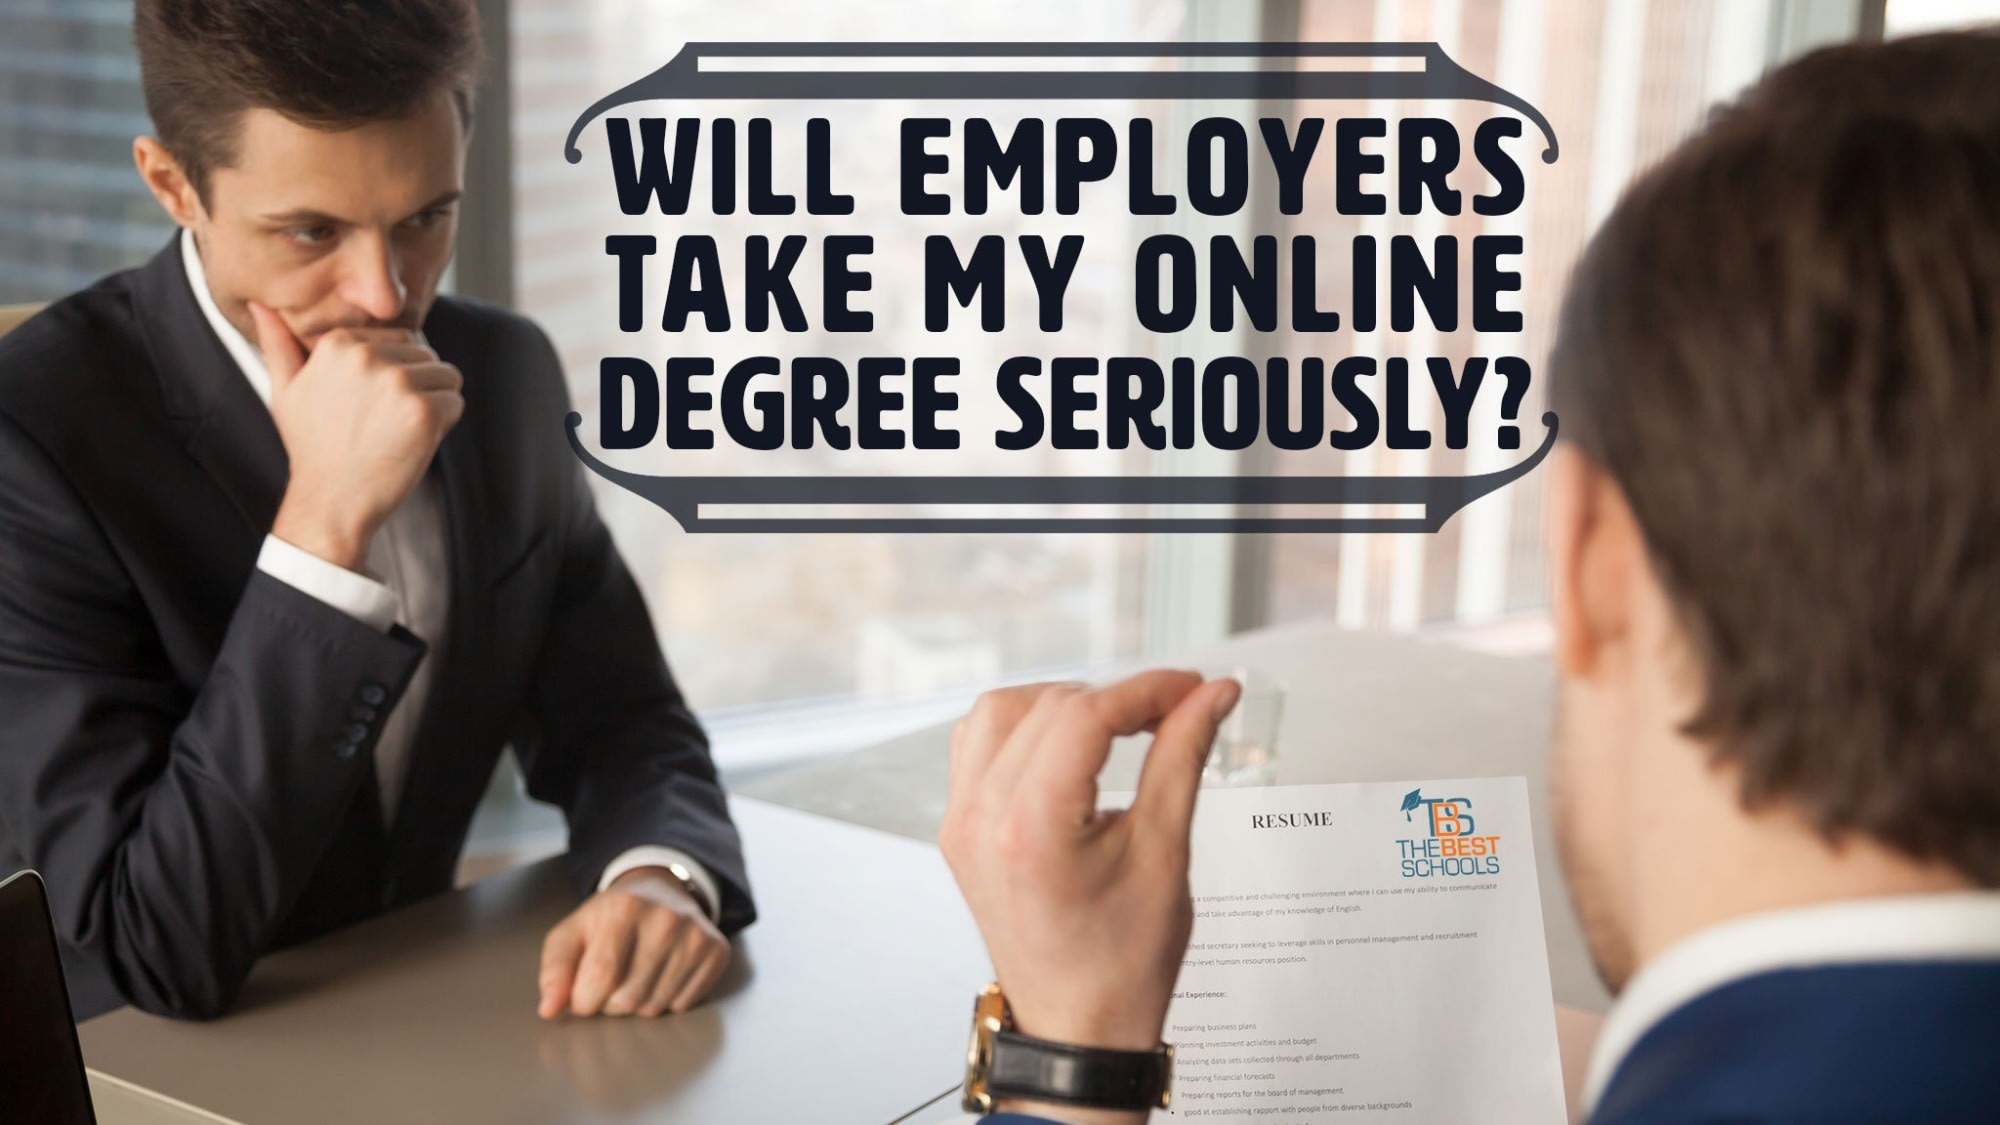 Will Employers Take My Online Degree Seriously